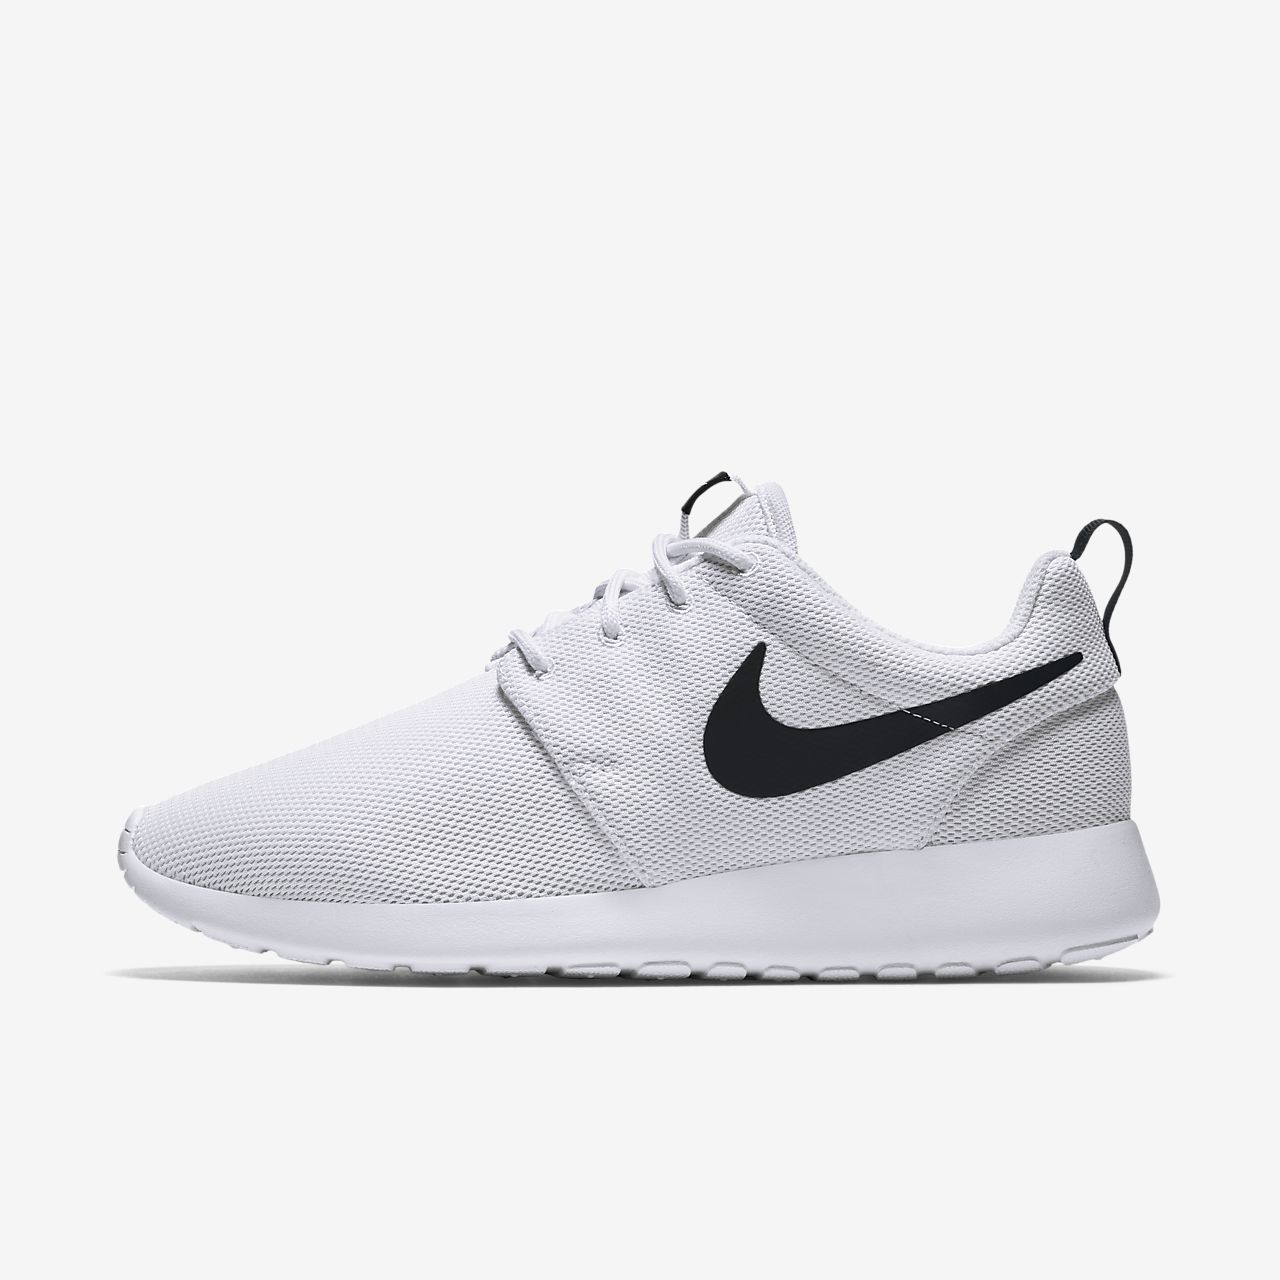 7bb428e0032 nike roshes